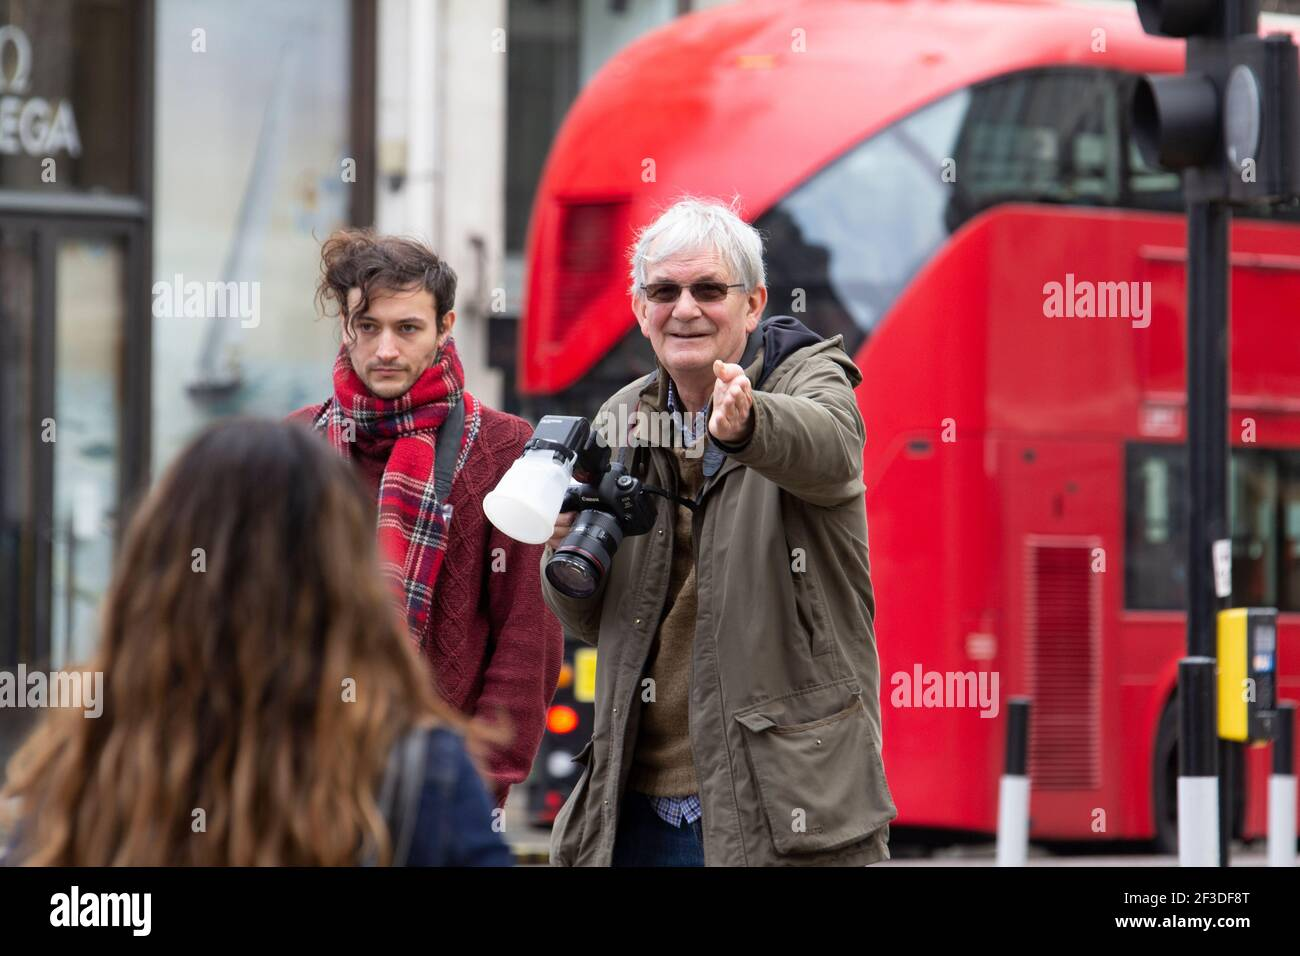 Martin Parr photographer at work in Oxford Street London, Martin Parr is a British documentary photographer, and  photojournalist Stock Photo